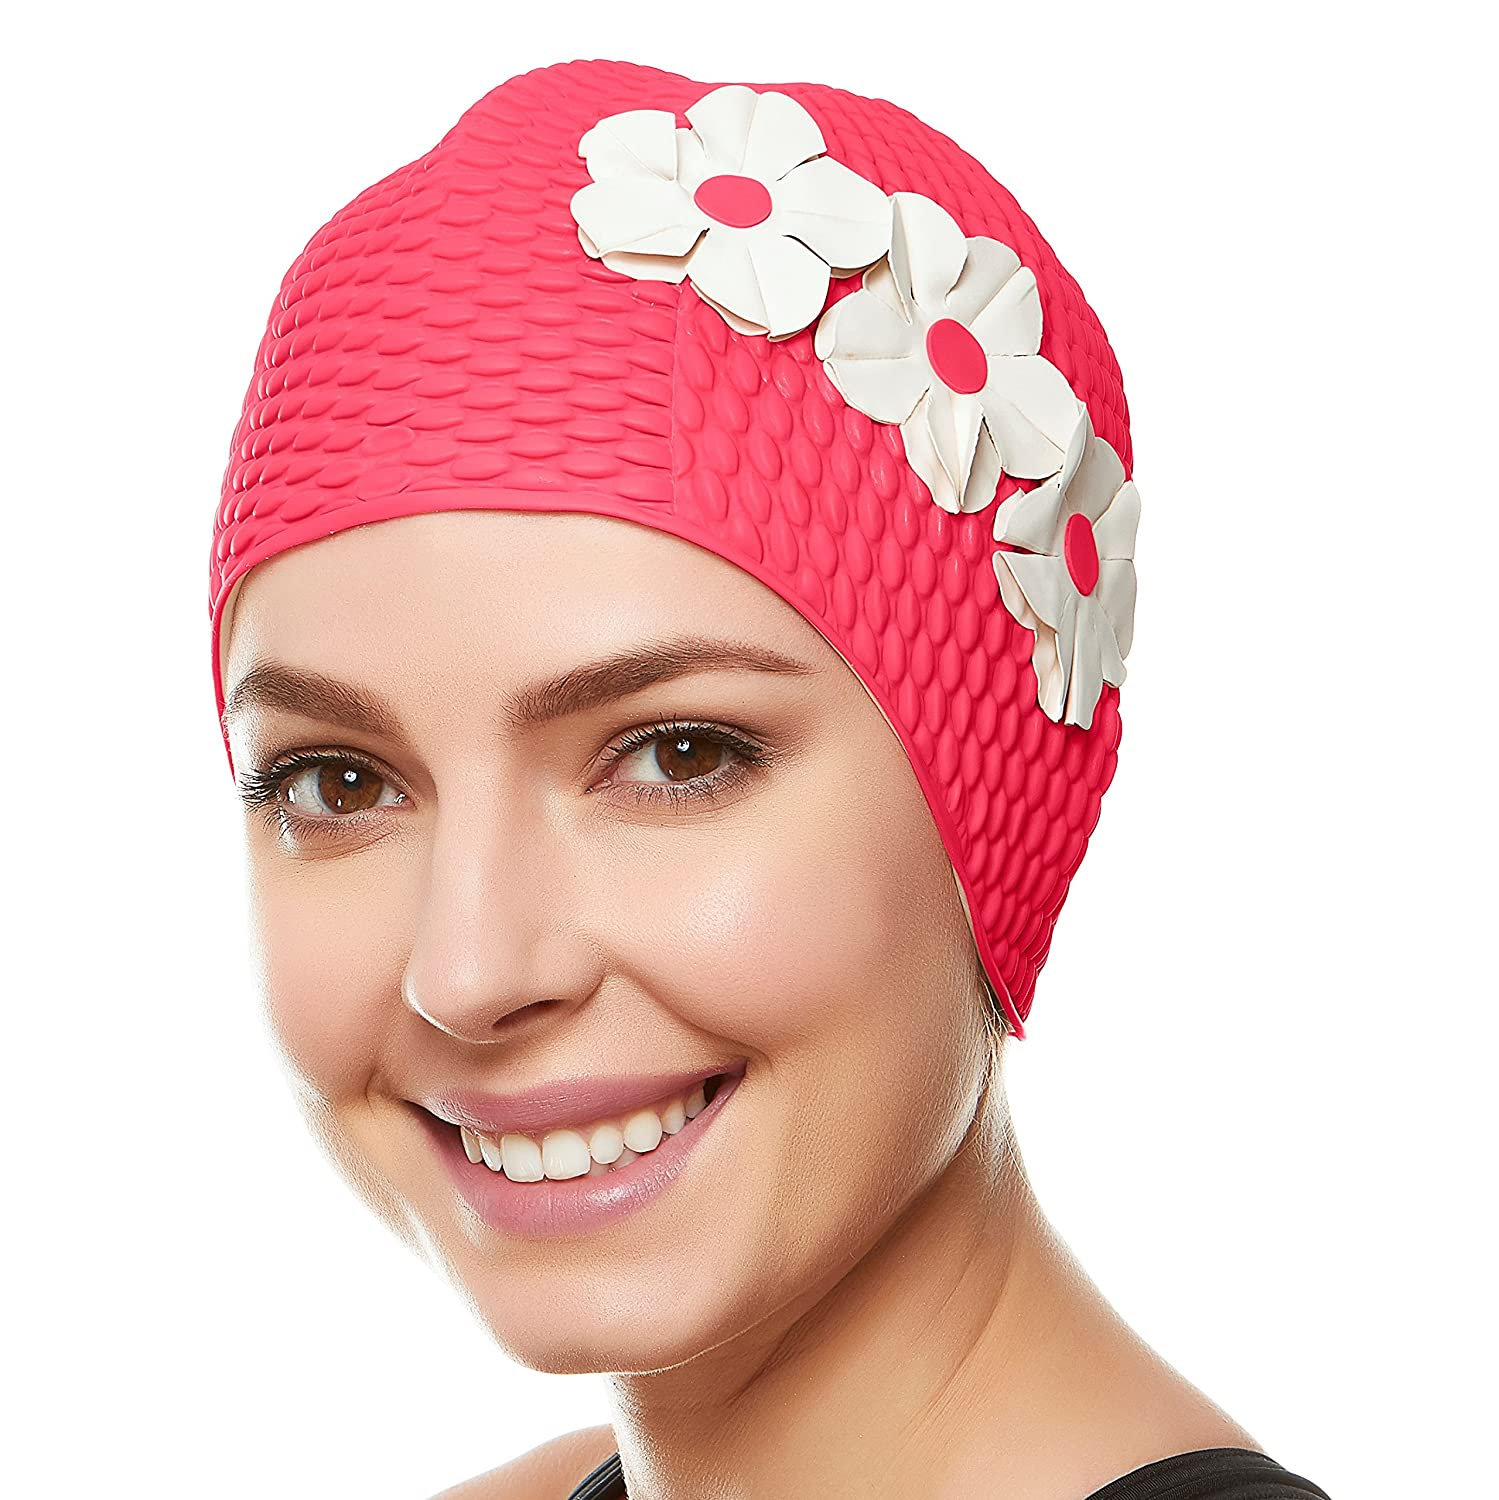 d791944bd02c7 (Pink 3 with White - Swim Flowers) - Beemo Swim Bathing Caps for Women &  Girls - Retro Style Latex Bubble Crepe Swimming Hat with 3 Flowers for  Long/Short ...